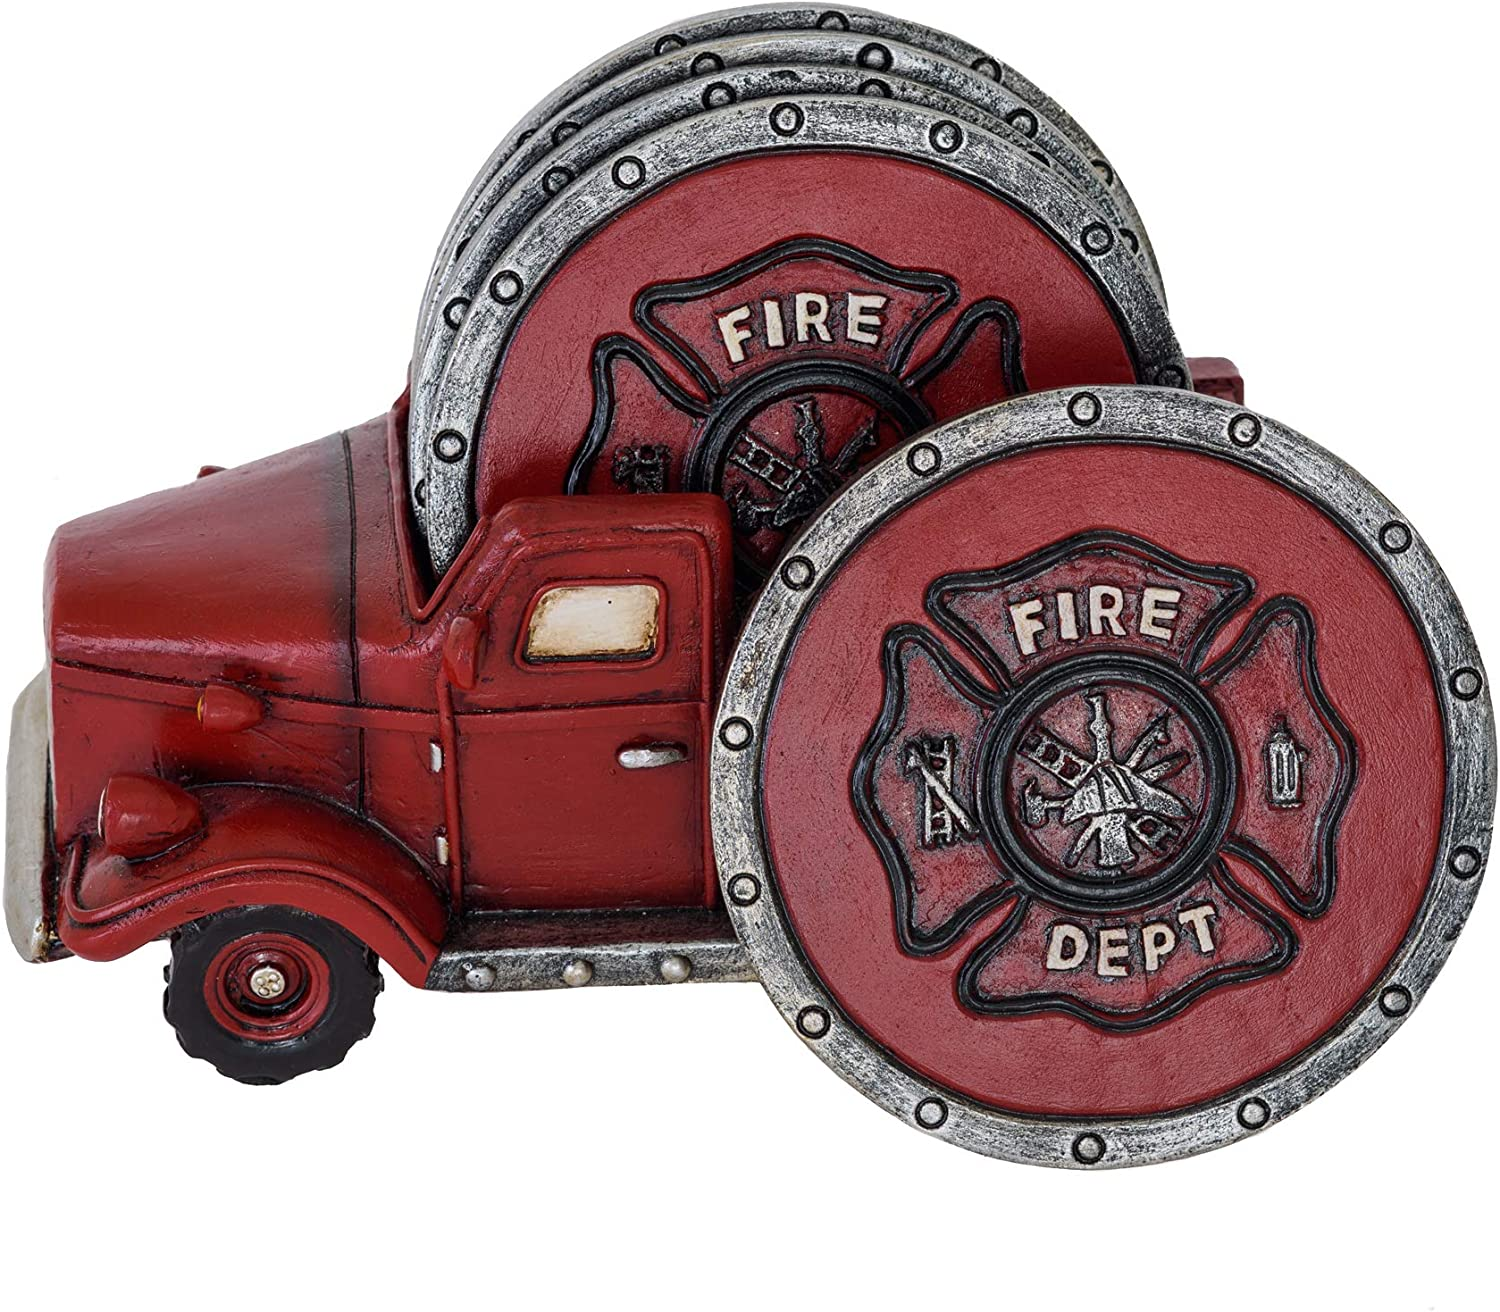 Amazon Com Fire Truck Coaster Set Of 5 Firefighter Kitchen Table Coasters Set Rustic Home Decor Living Room Firefighter Coaster Sets With Holder Dining Room Decor And Accessories Kitchen Dining